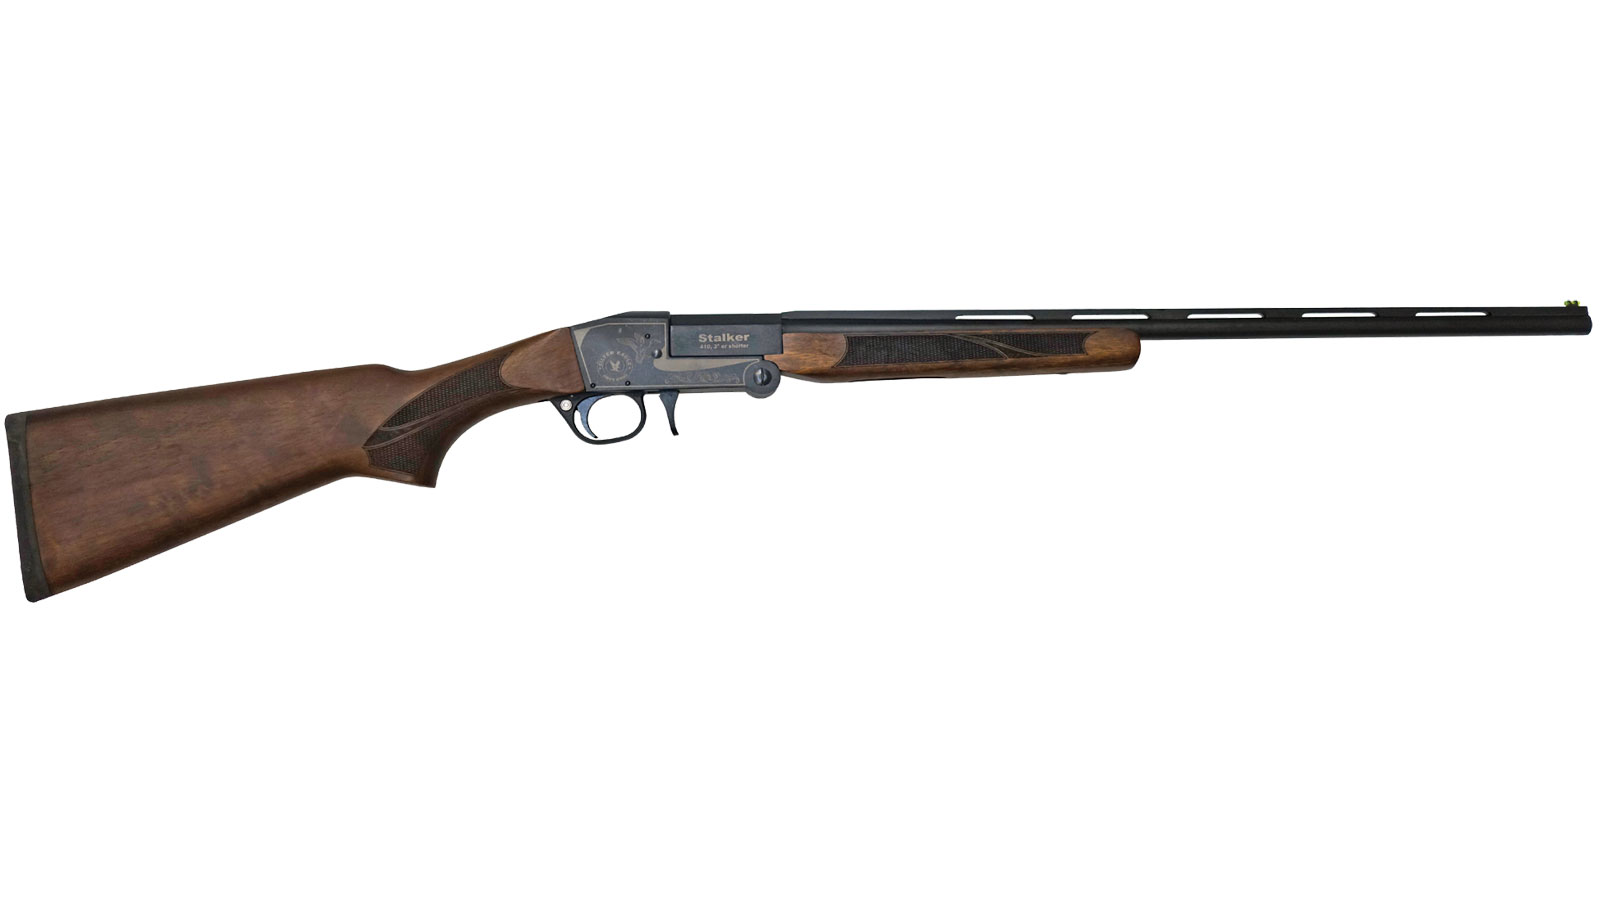 T R Imports TK3622Y Silver Eagle Stalker Field Youth Break Open 410 Gauge ga 22 3 in.  Turkish Walnut Stk Steel in.